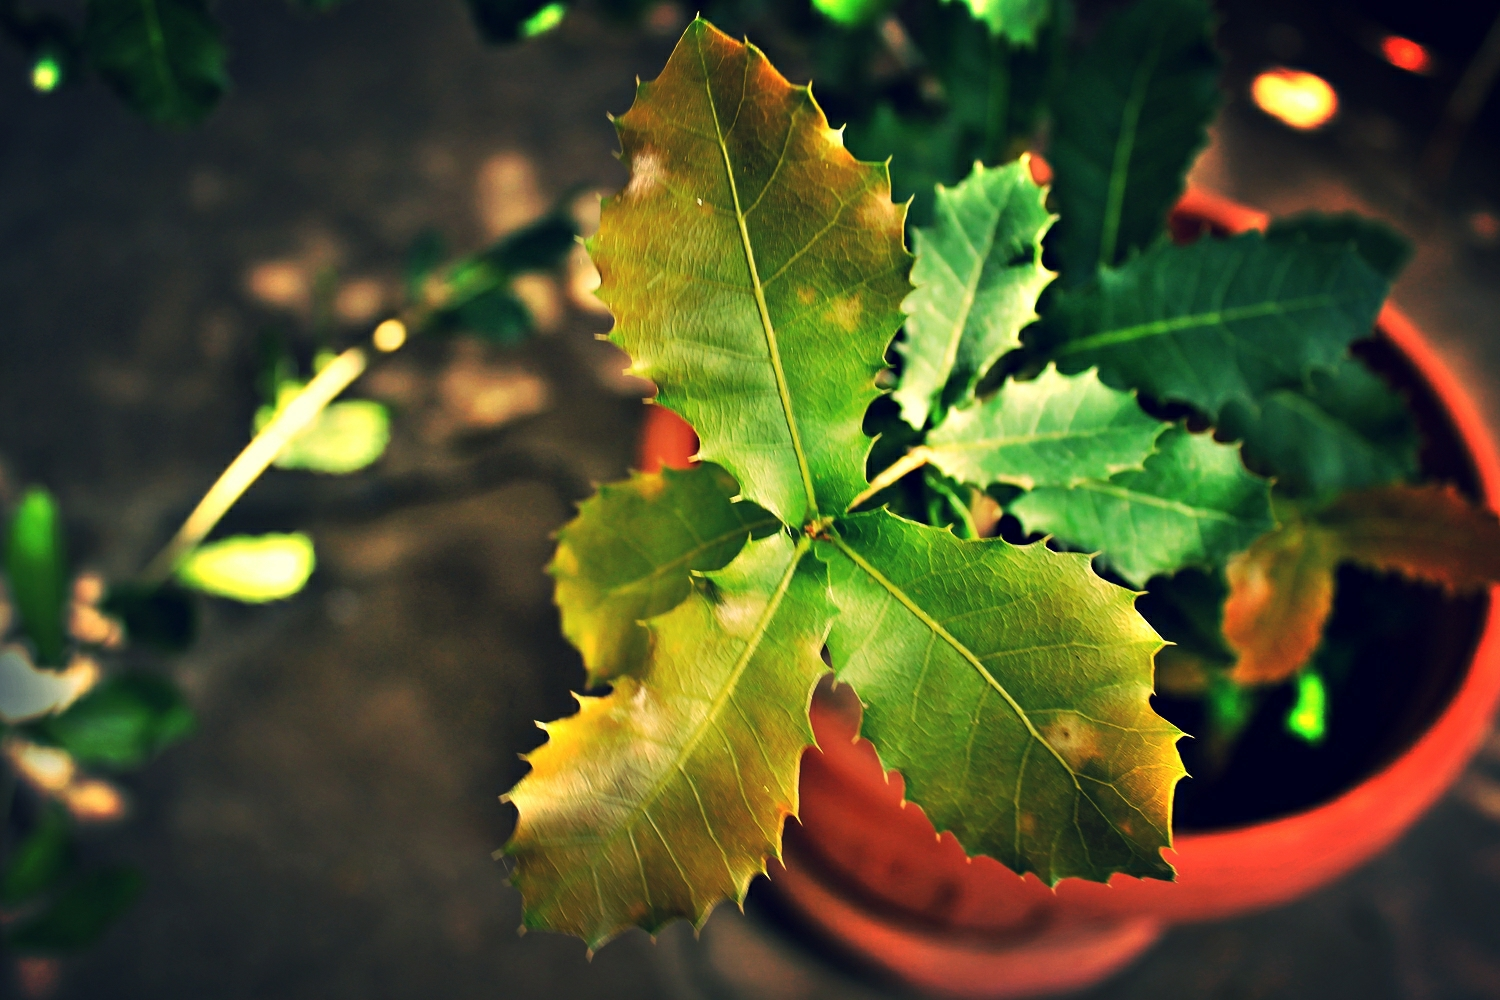 Oak saplings ready for planting. Photo by Rablem22 via Flickr